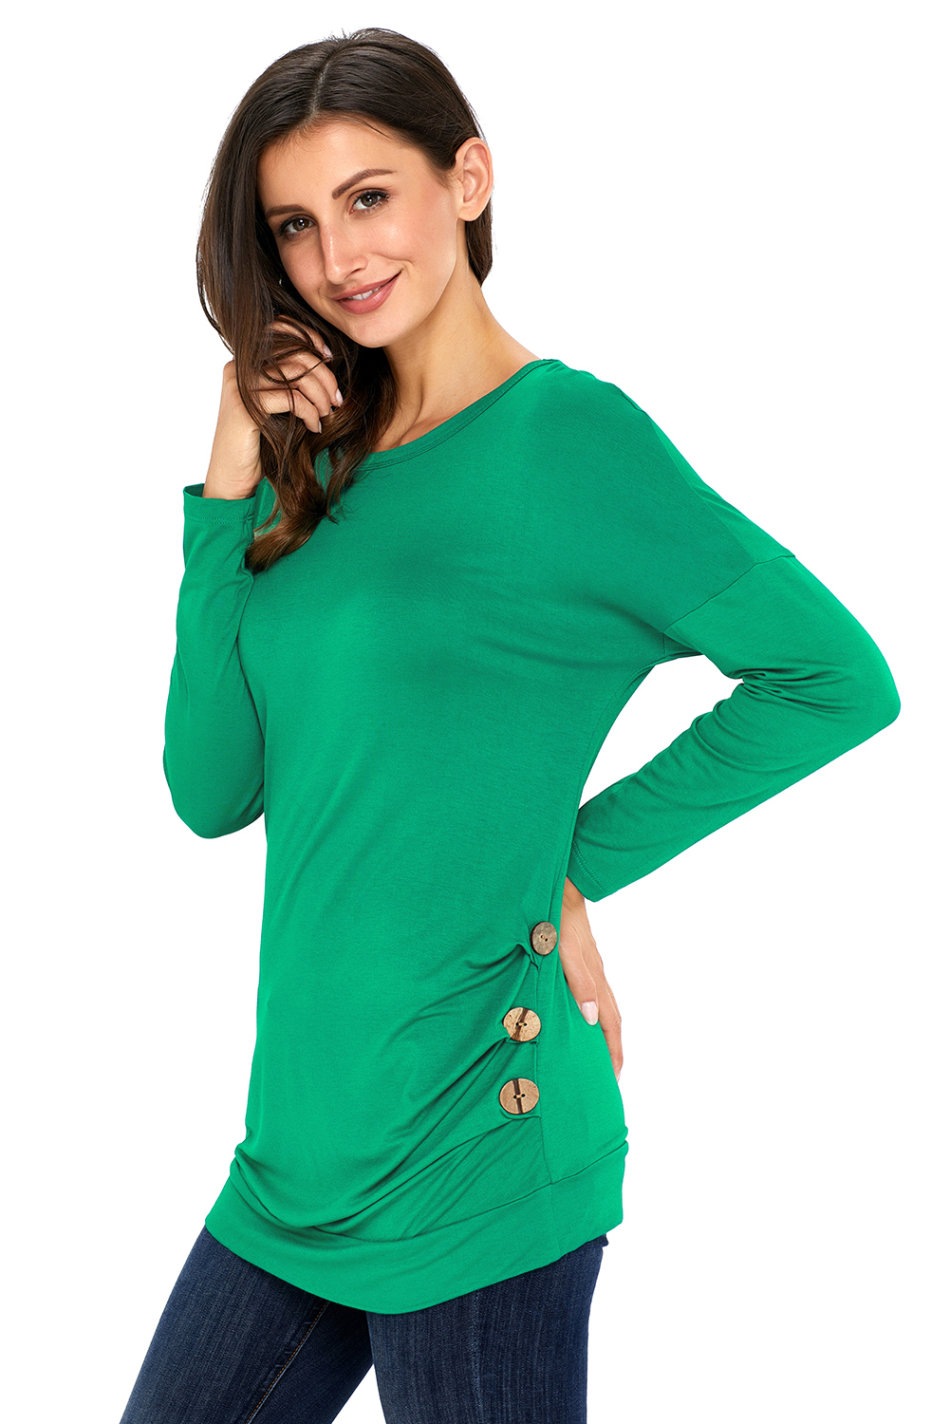 T shirts tops tops top women 39 s top green top tunic top for Women s broadcloth shirts